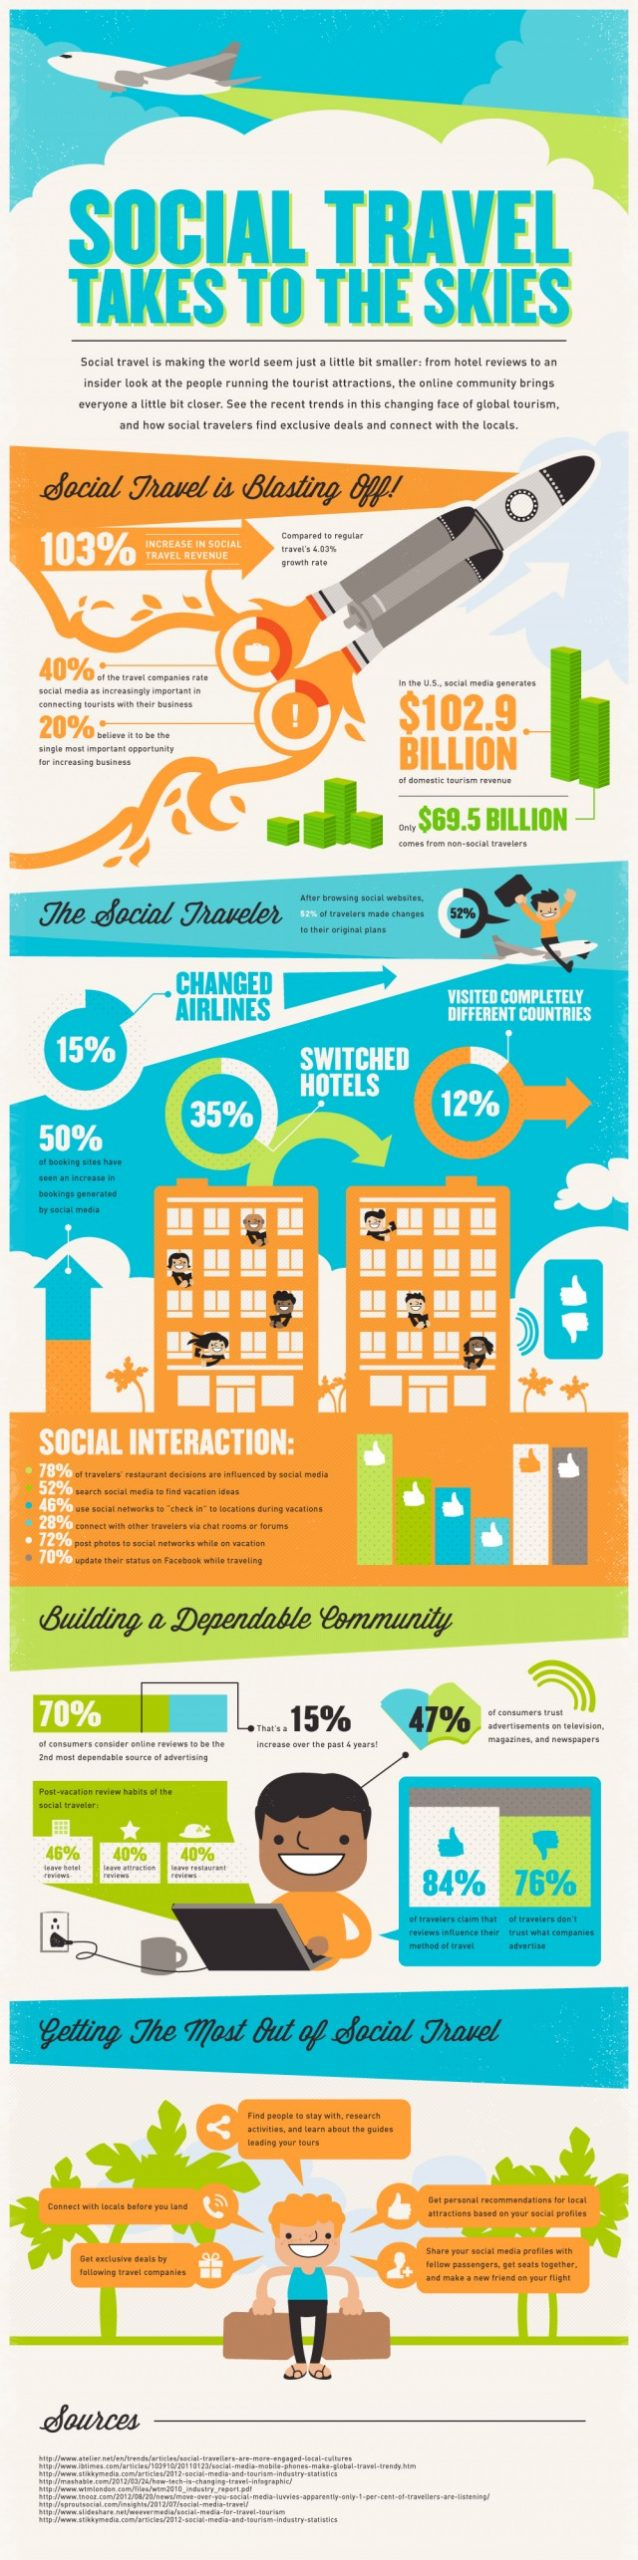 Social Travel takes to the Skies [Infographic]